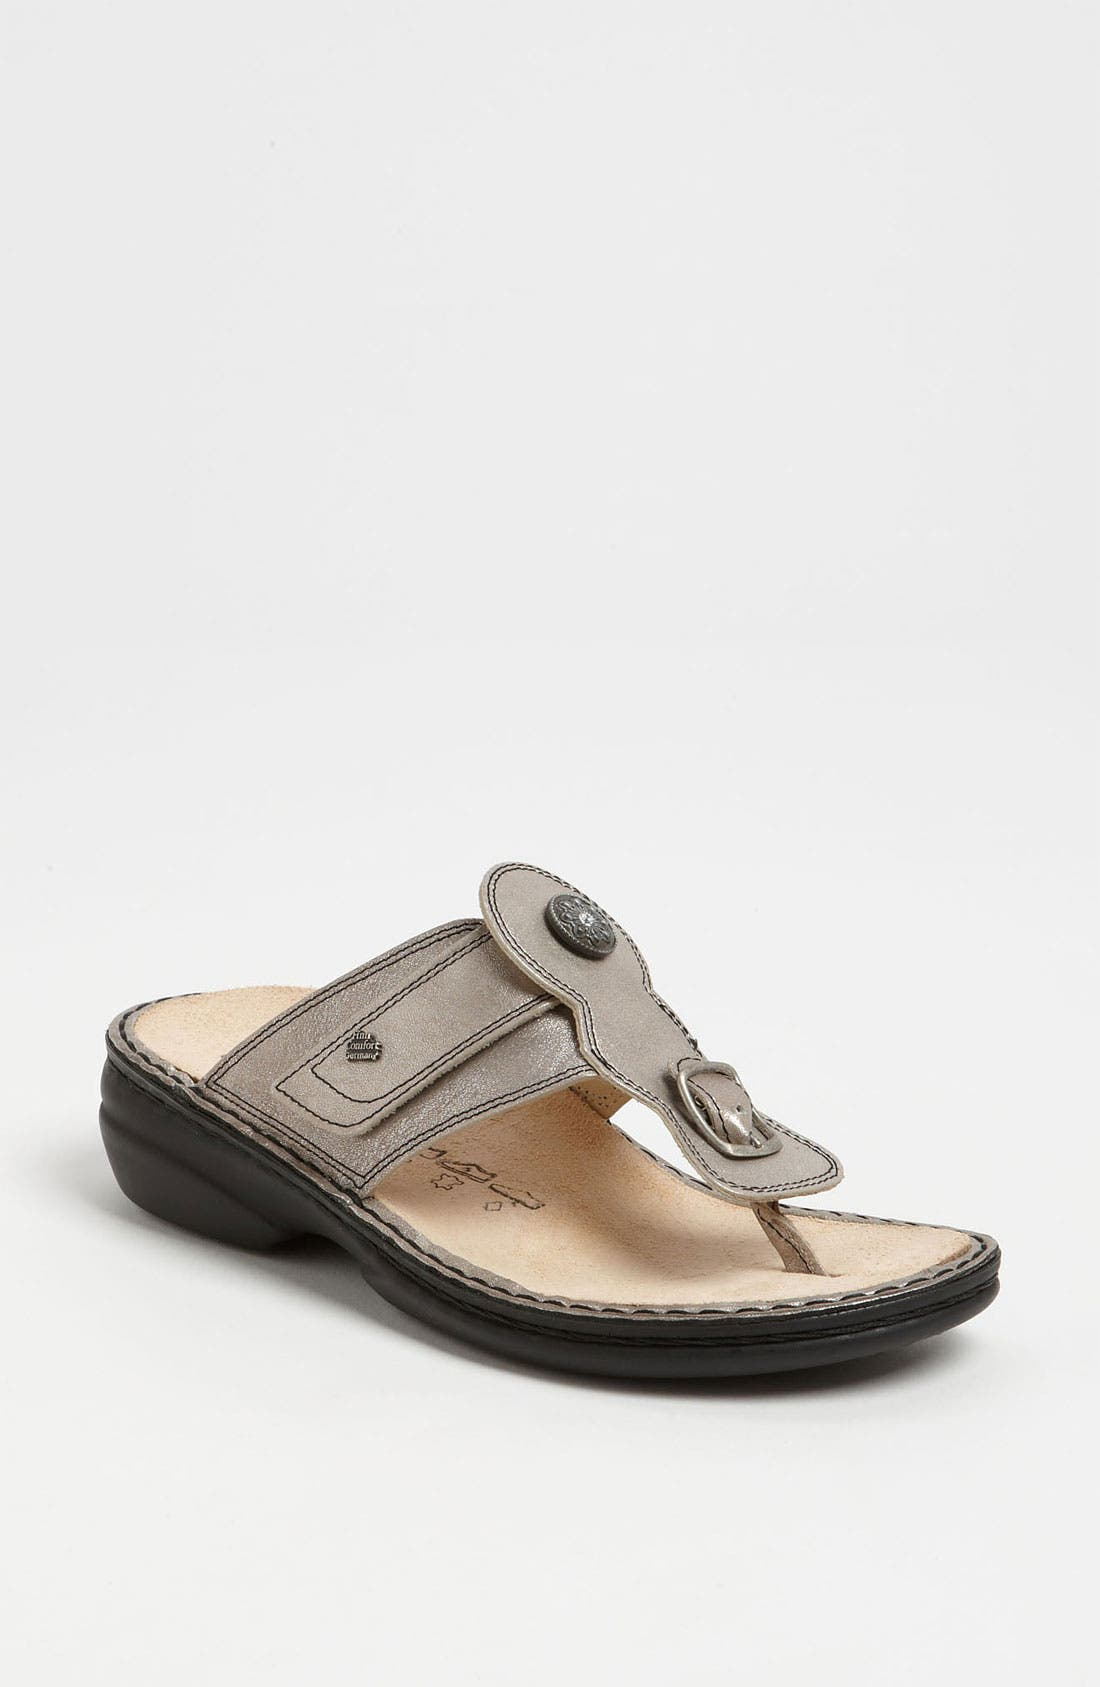 Alternate Image 1 Selected - Finn Comfort 'Witchita' Sandal